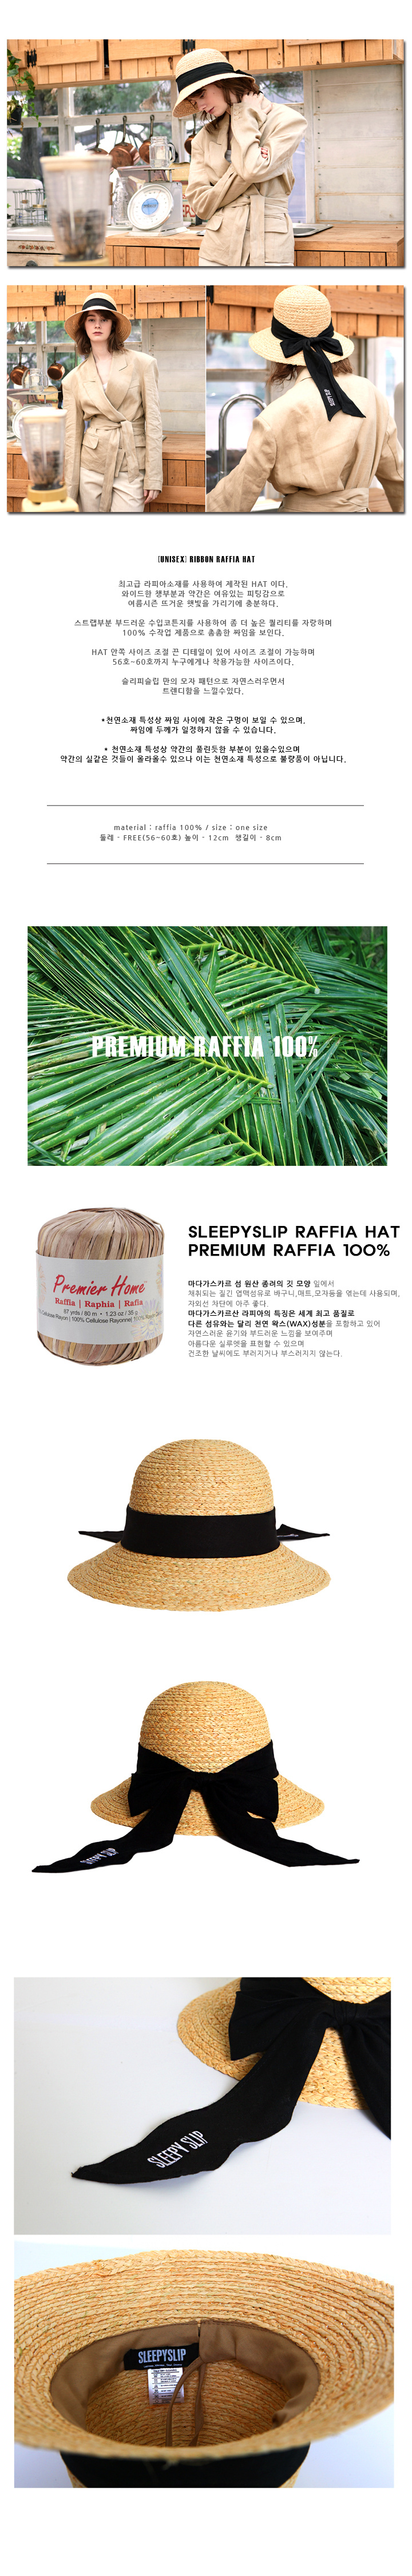 슬리피슬립(SLEEPYSLIP) [unisex]RIBBON RAFFIA HAT